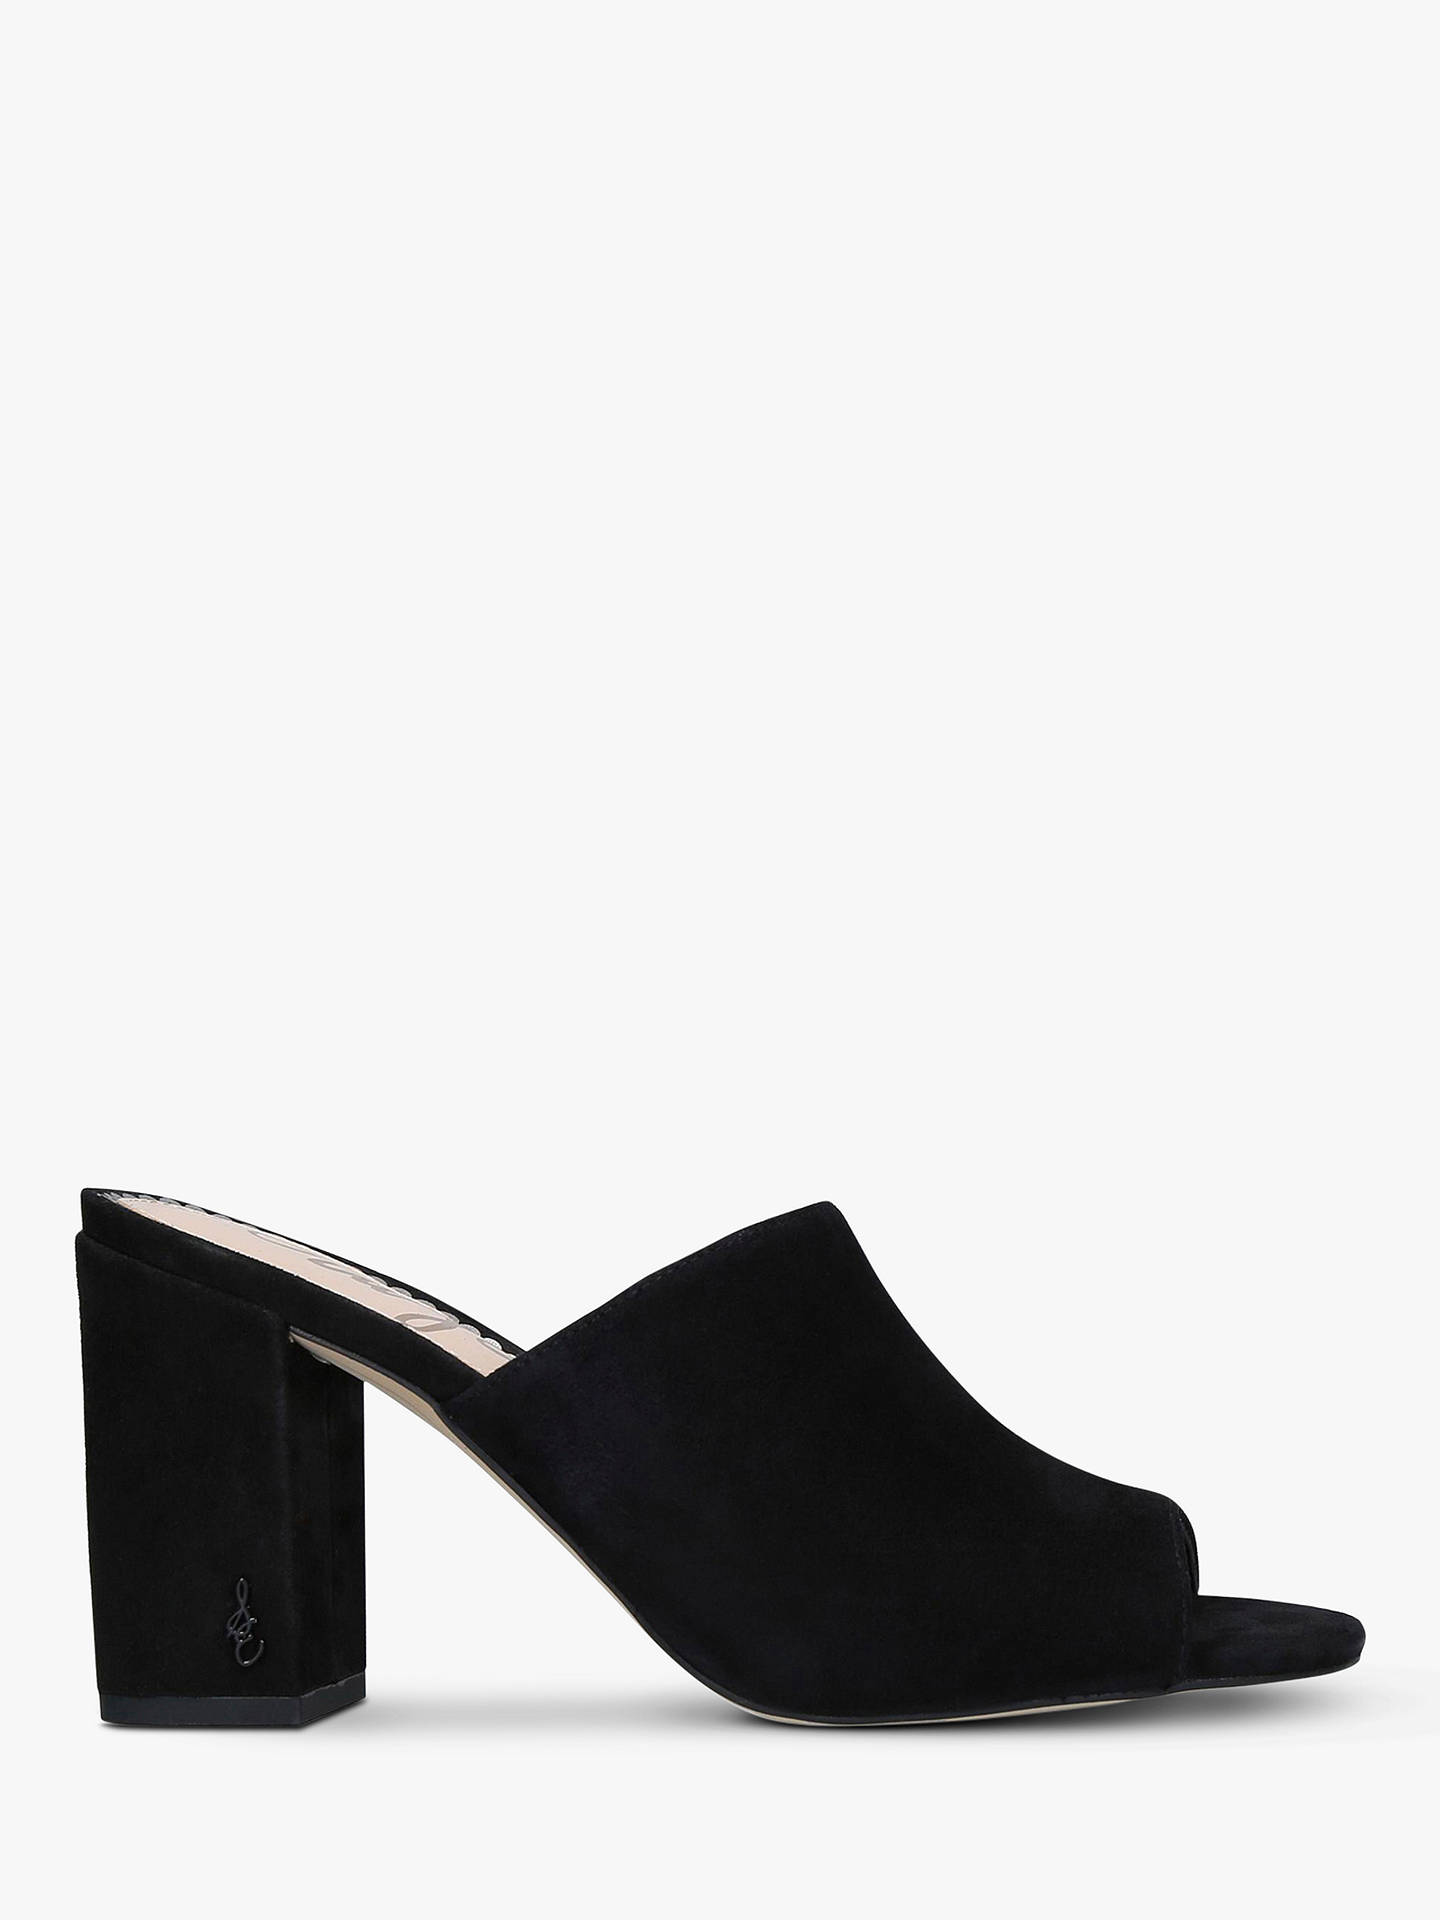 34ae72314ab44 Buy Sam Edelman Orlie Suede Block Heel Mule Sandals, Black, 8 Online at  johnlewis ...